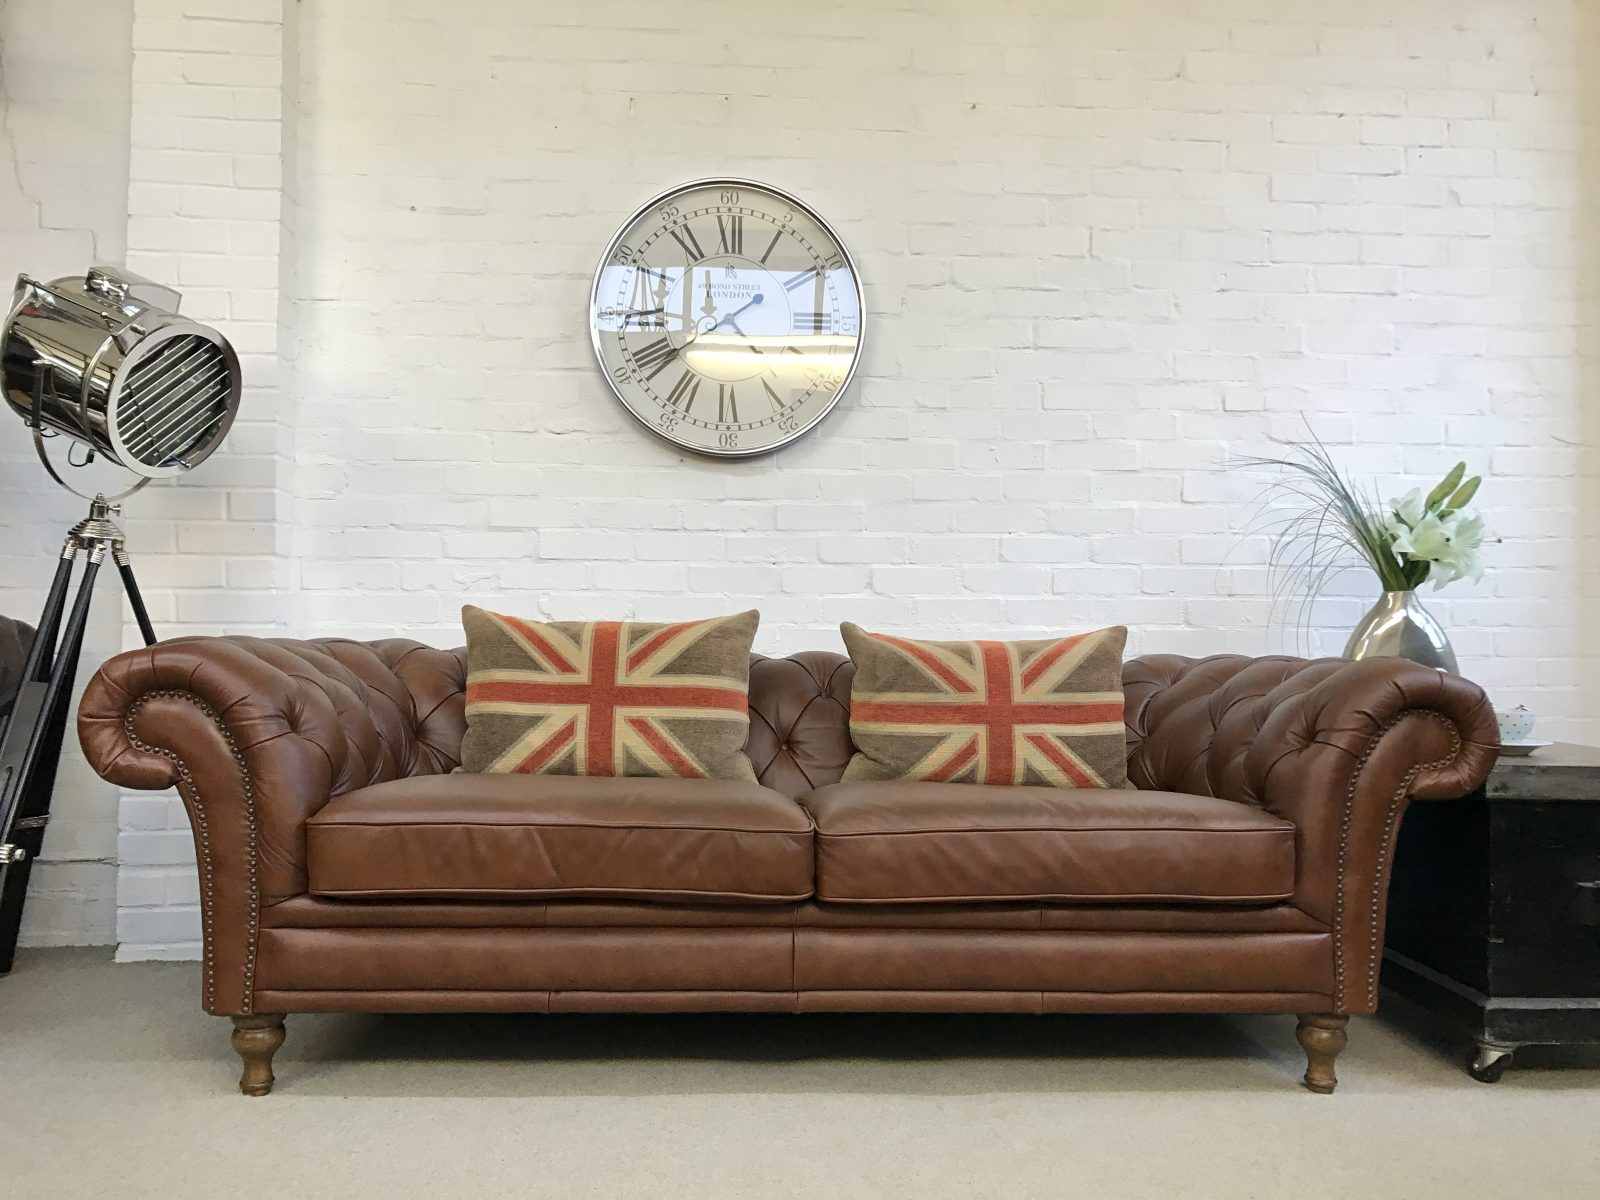 Superb 3/4 Seater Chesterfield Sofa……..SOLD.